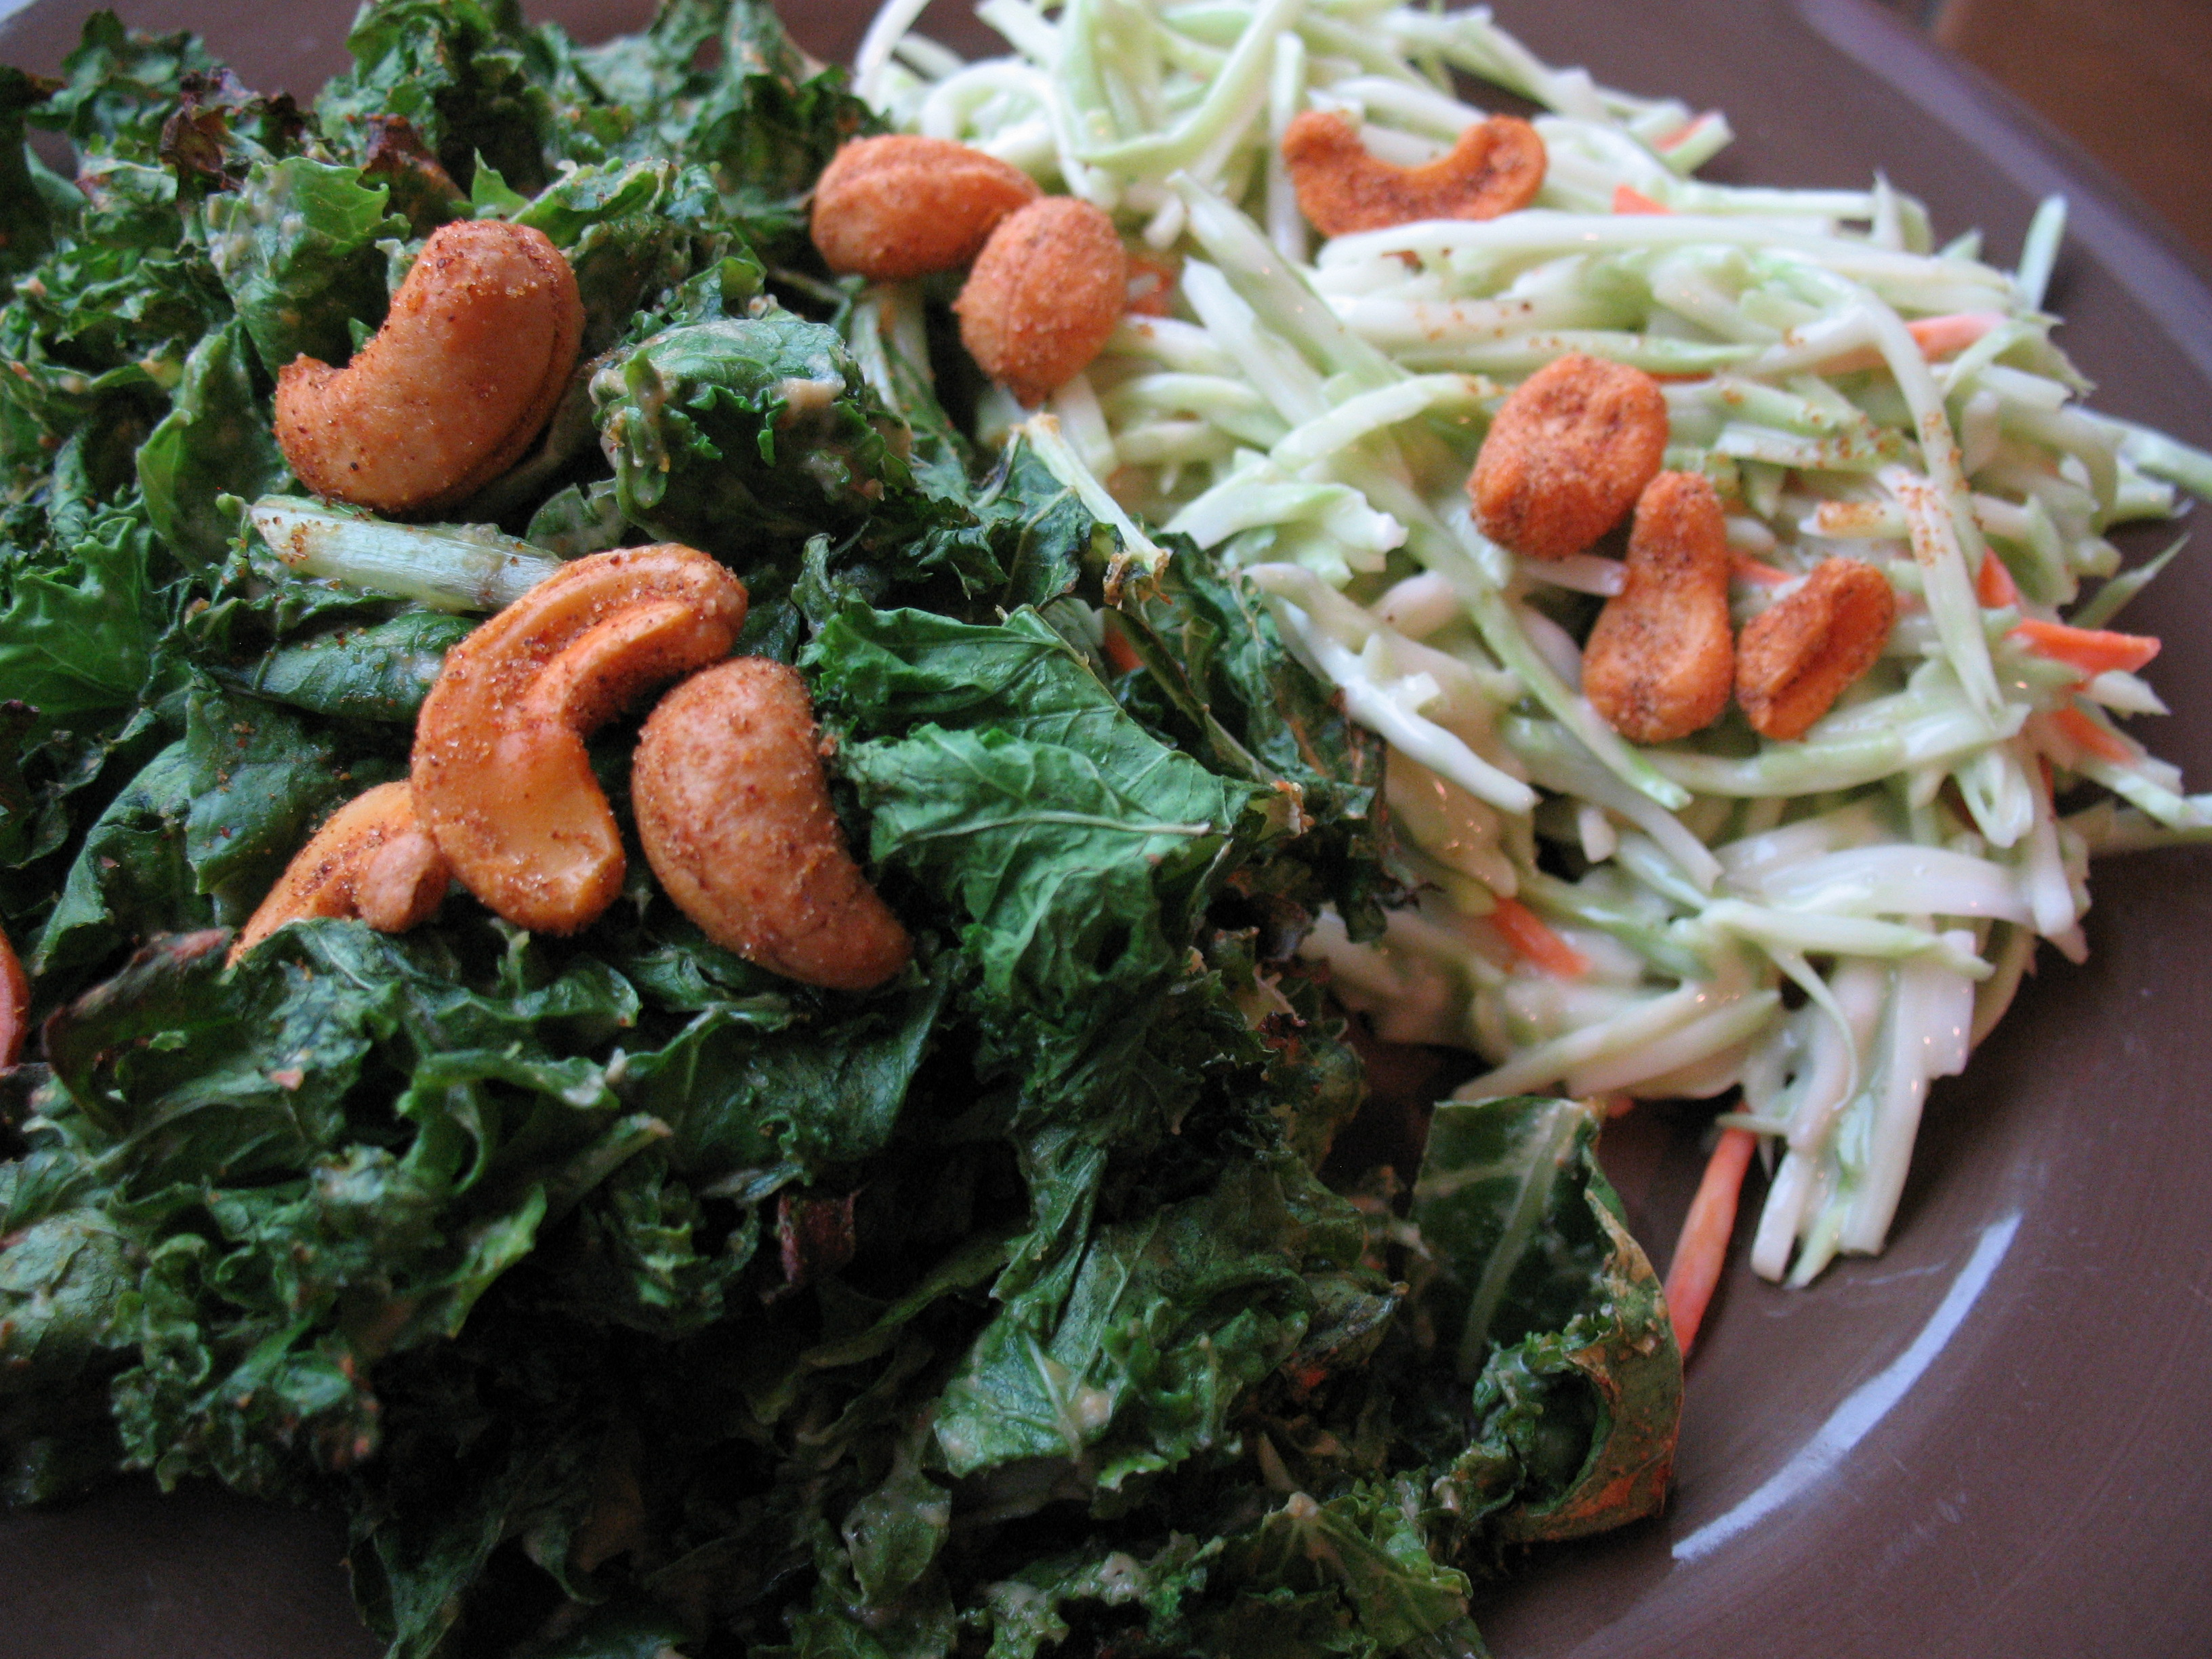 Plate of greens, slaw and nuts